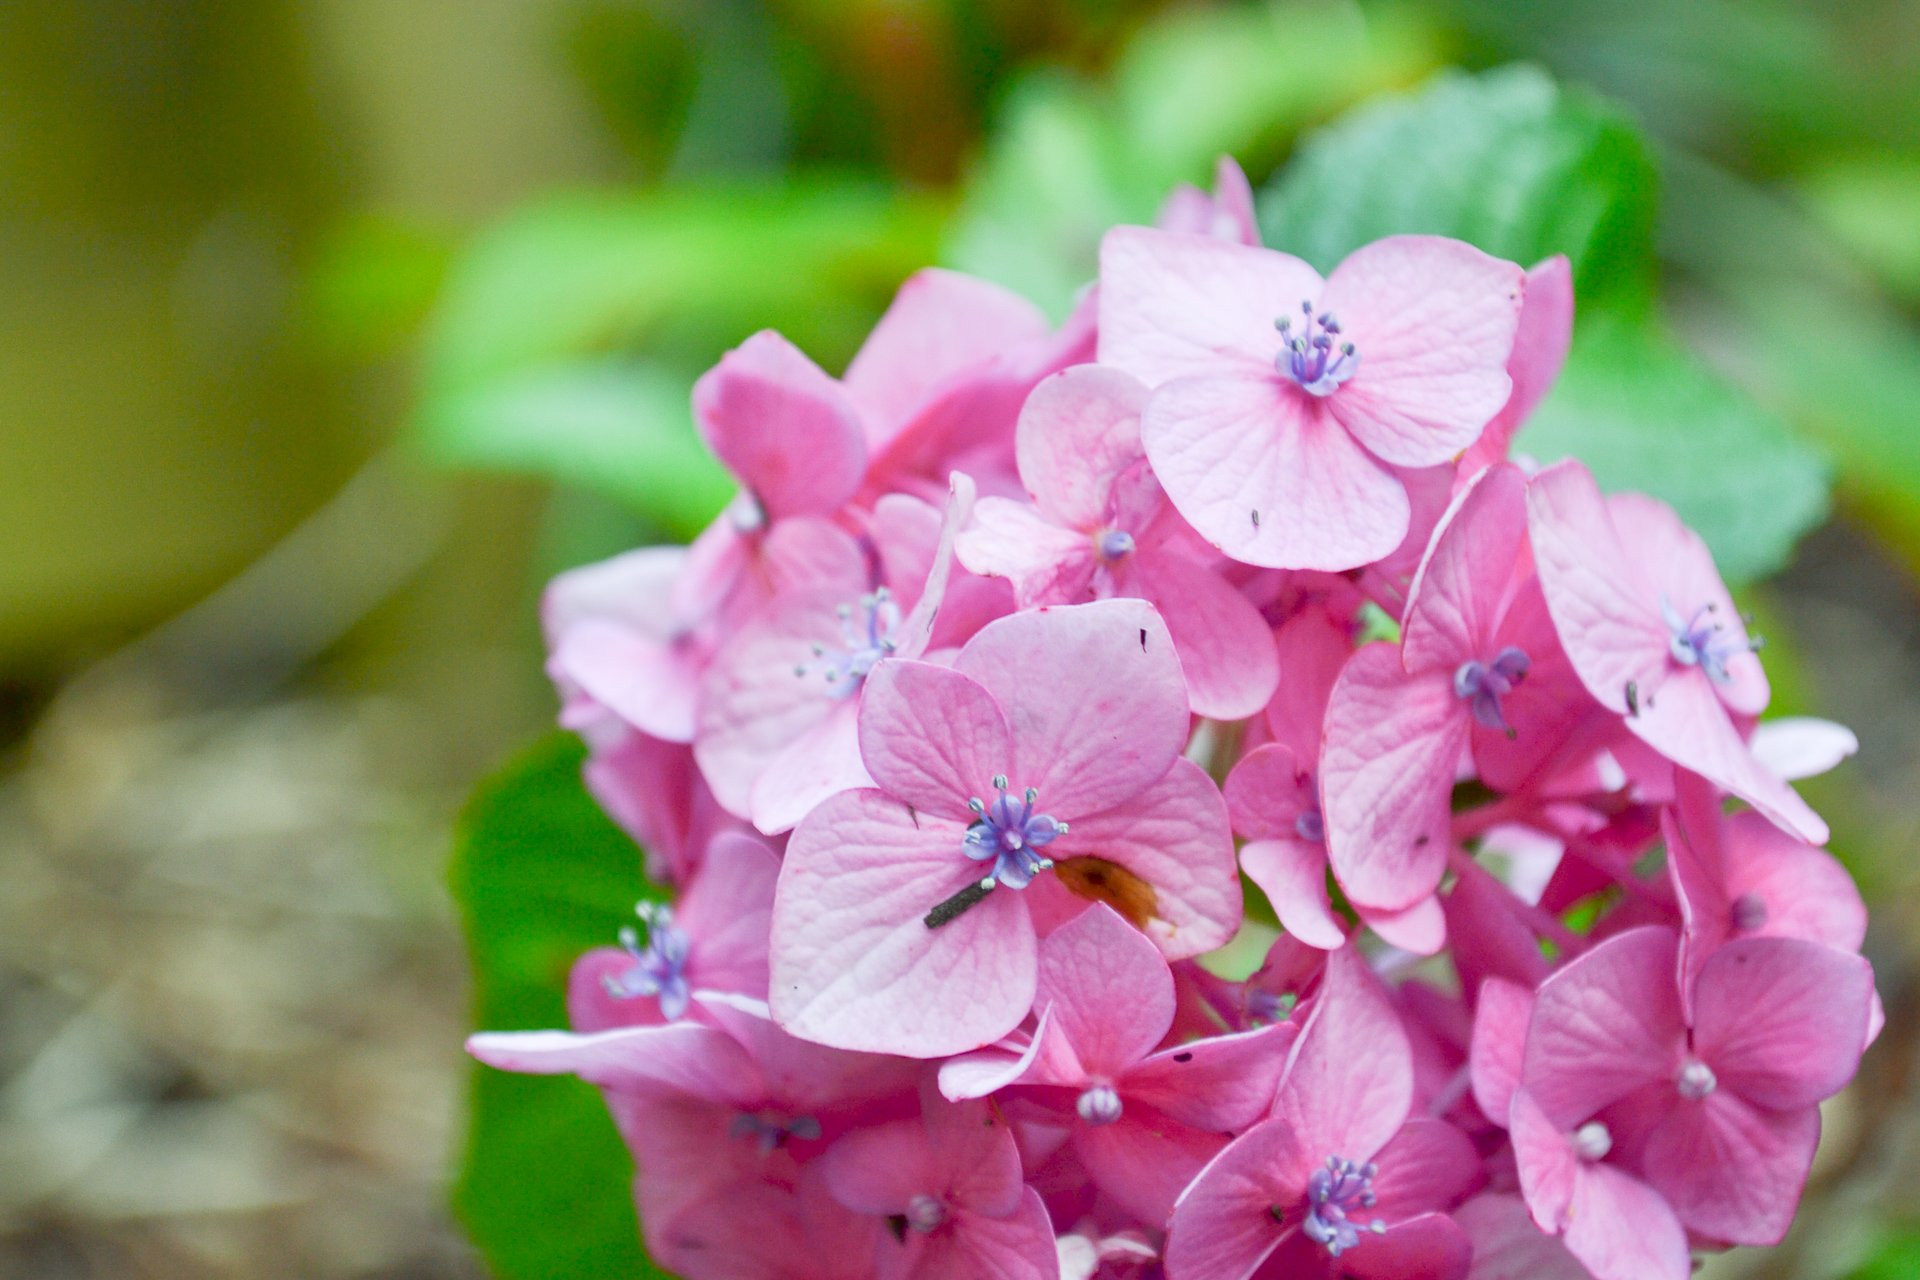 small bud - bloomstruck hydrangea - pink